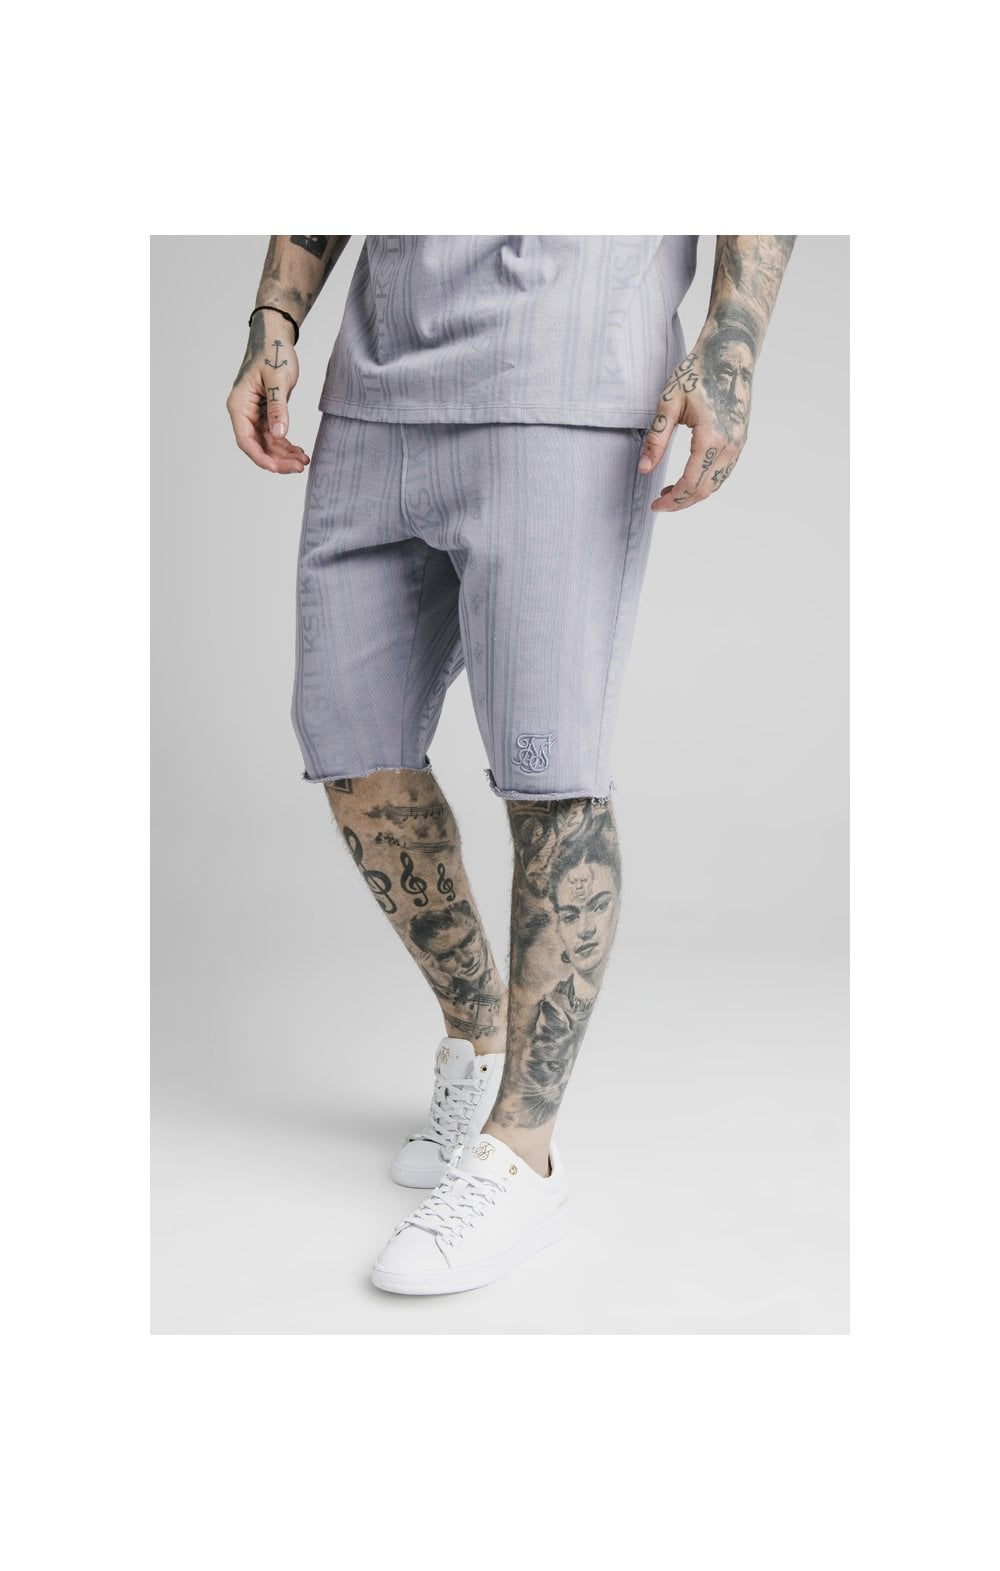 Load image into Gallery viewer, SikSilk Pastel Gym Shorts - Grey